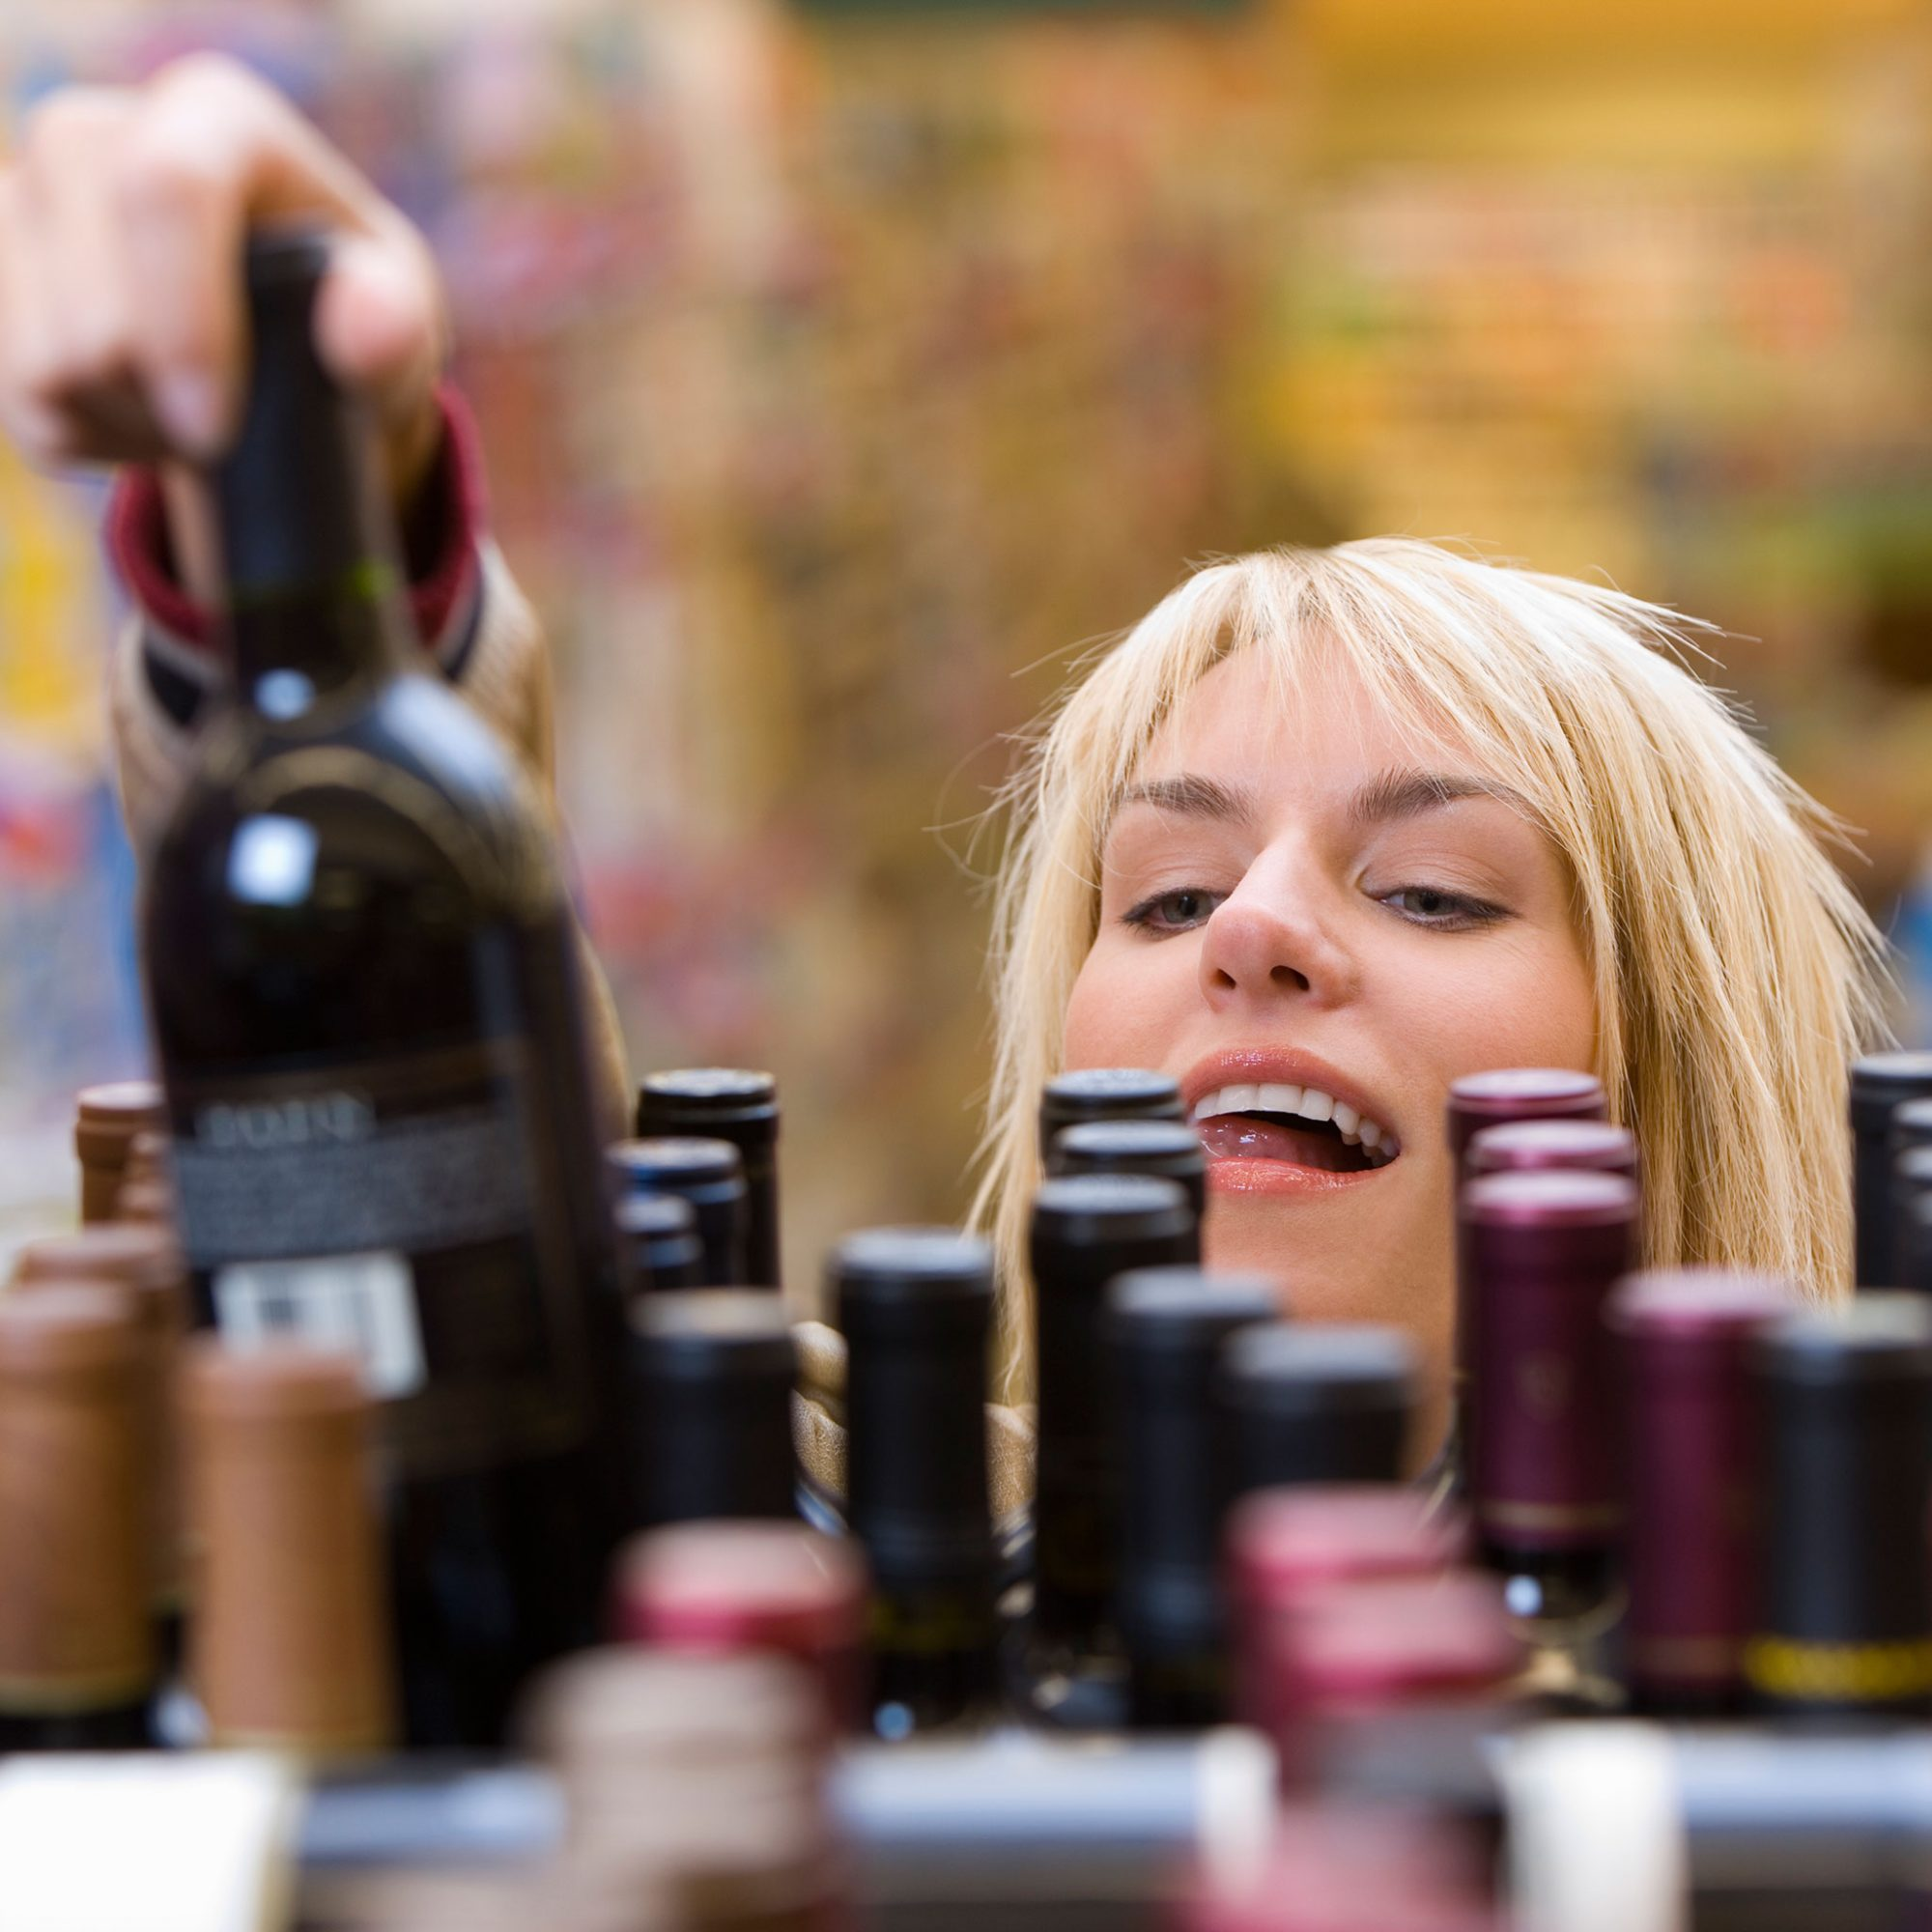 cheapest-time-to-buy-wine-fwx